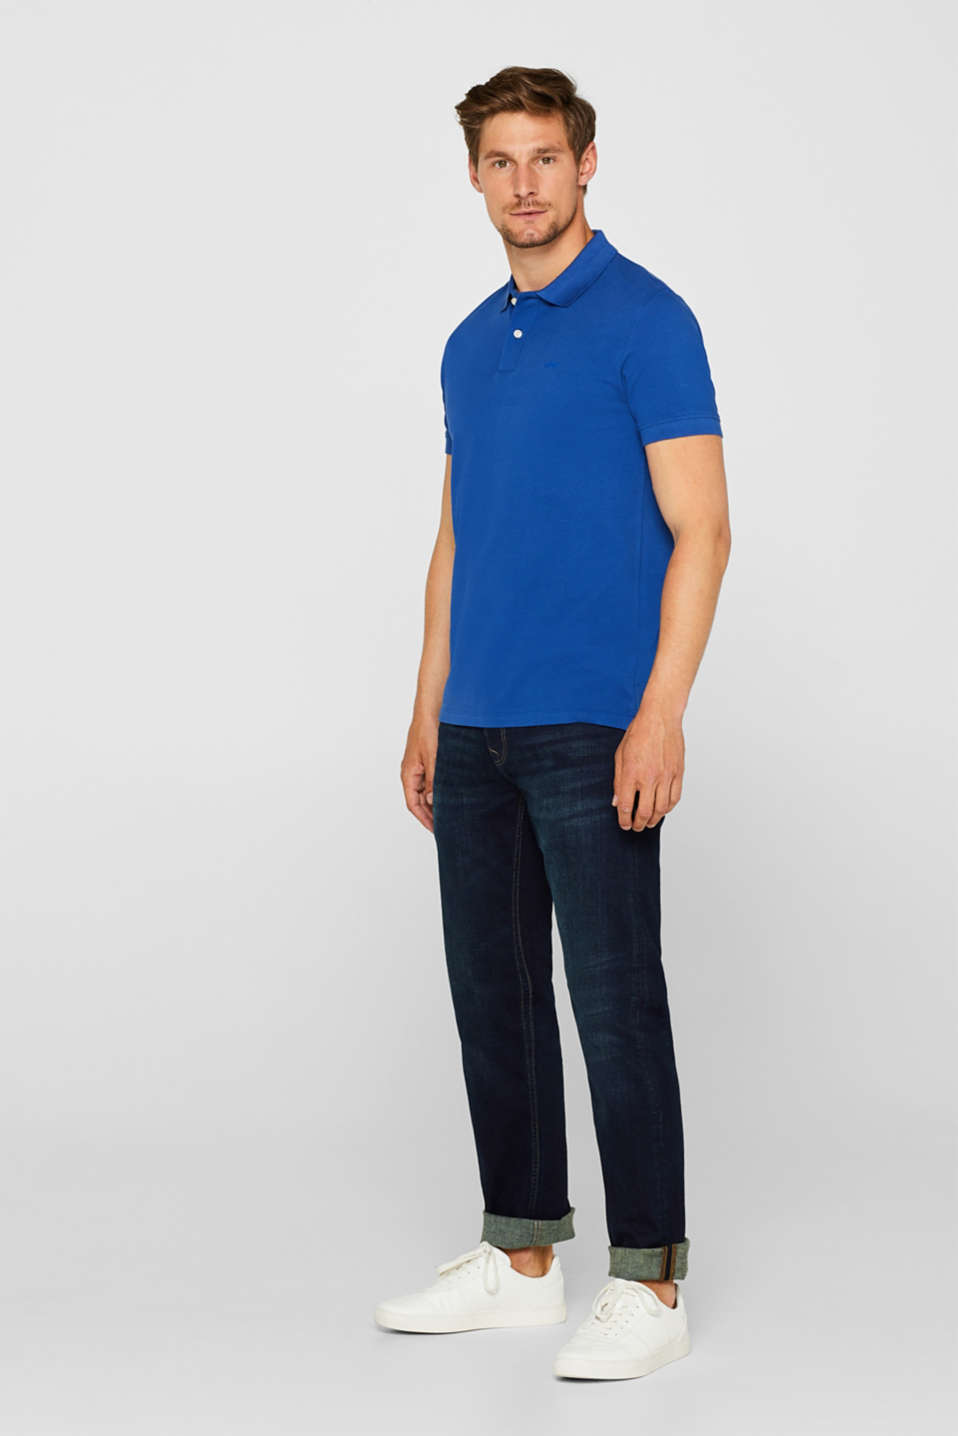 Piqué polo shirt in 100% cotton, BRIGHT BLUE, detail image number 2